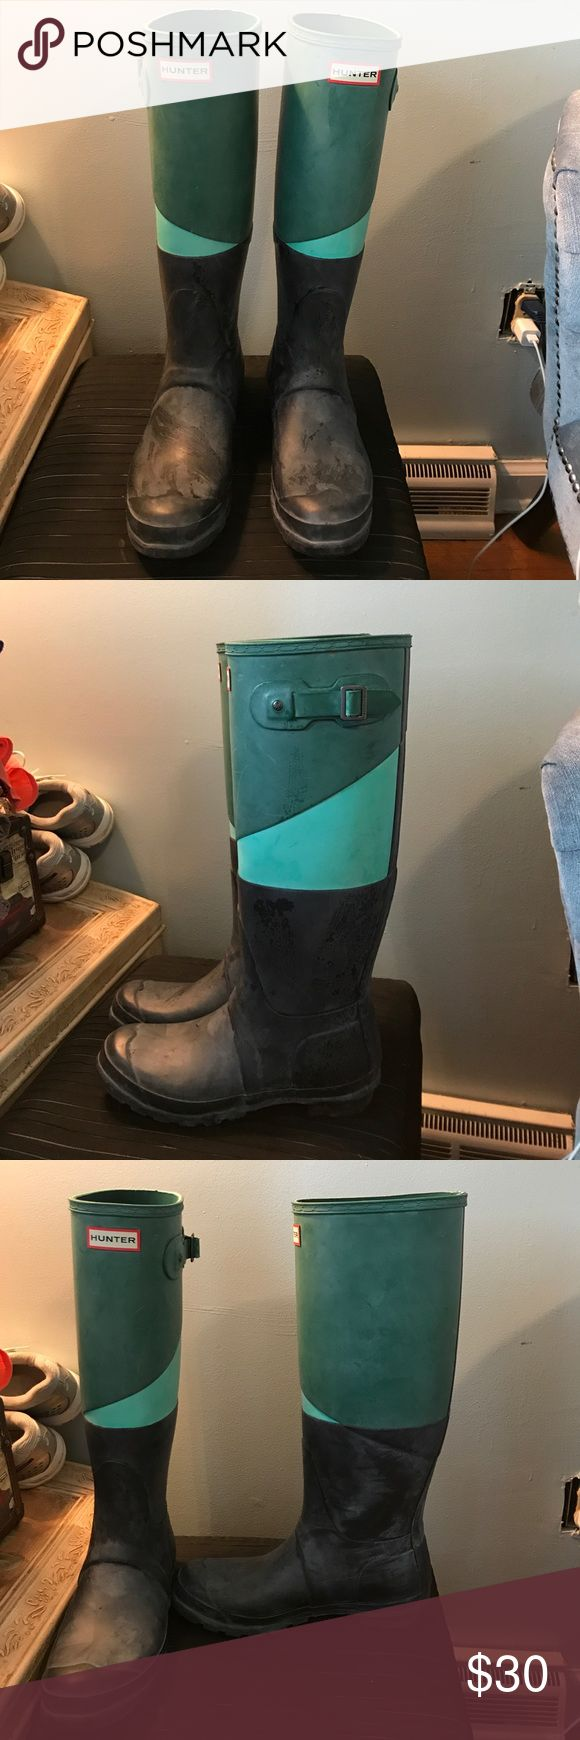 Tall Hunter rain boots Green, blue, and black tall hunter rain boots. Good condition. Only about a year old and worn a few times. Hunter Boots Shoes Winter & Rain Boots